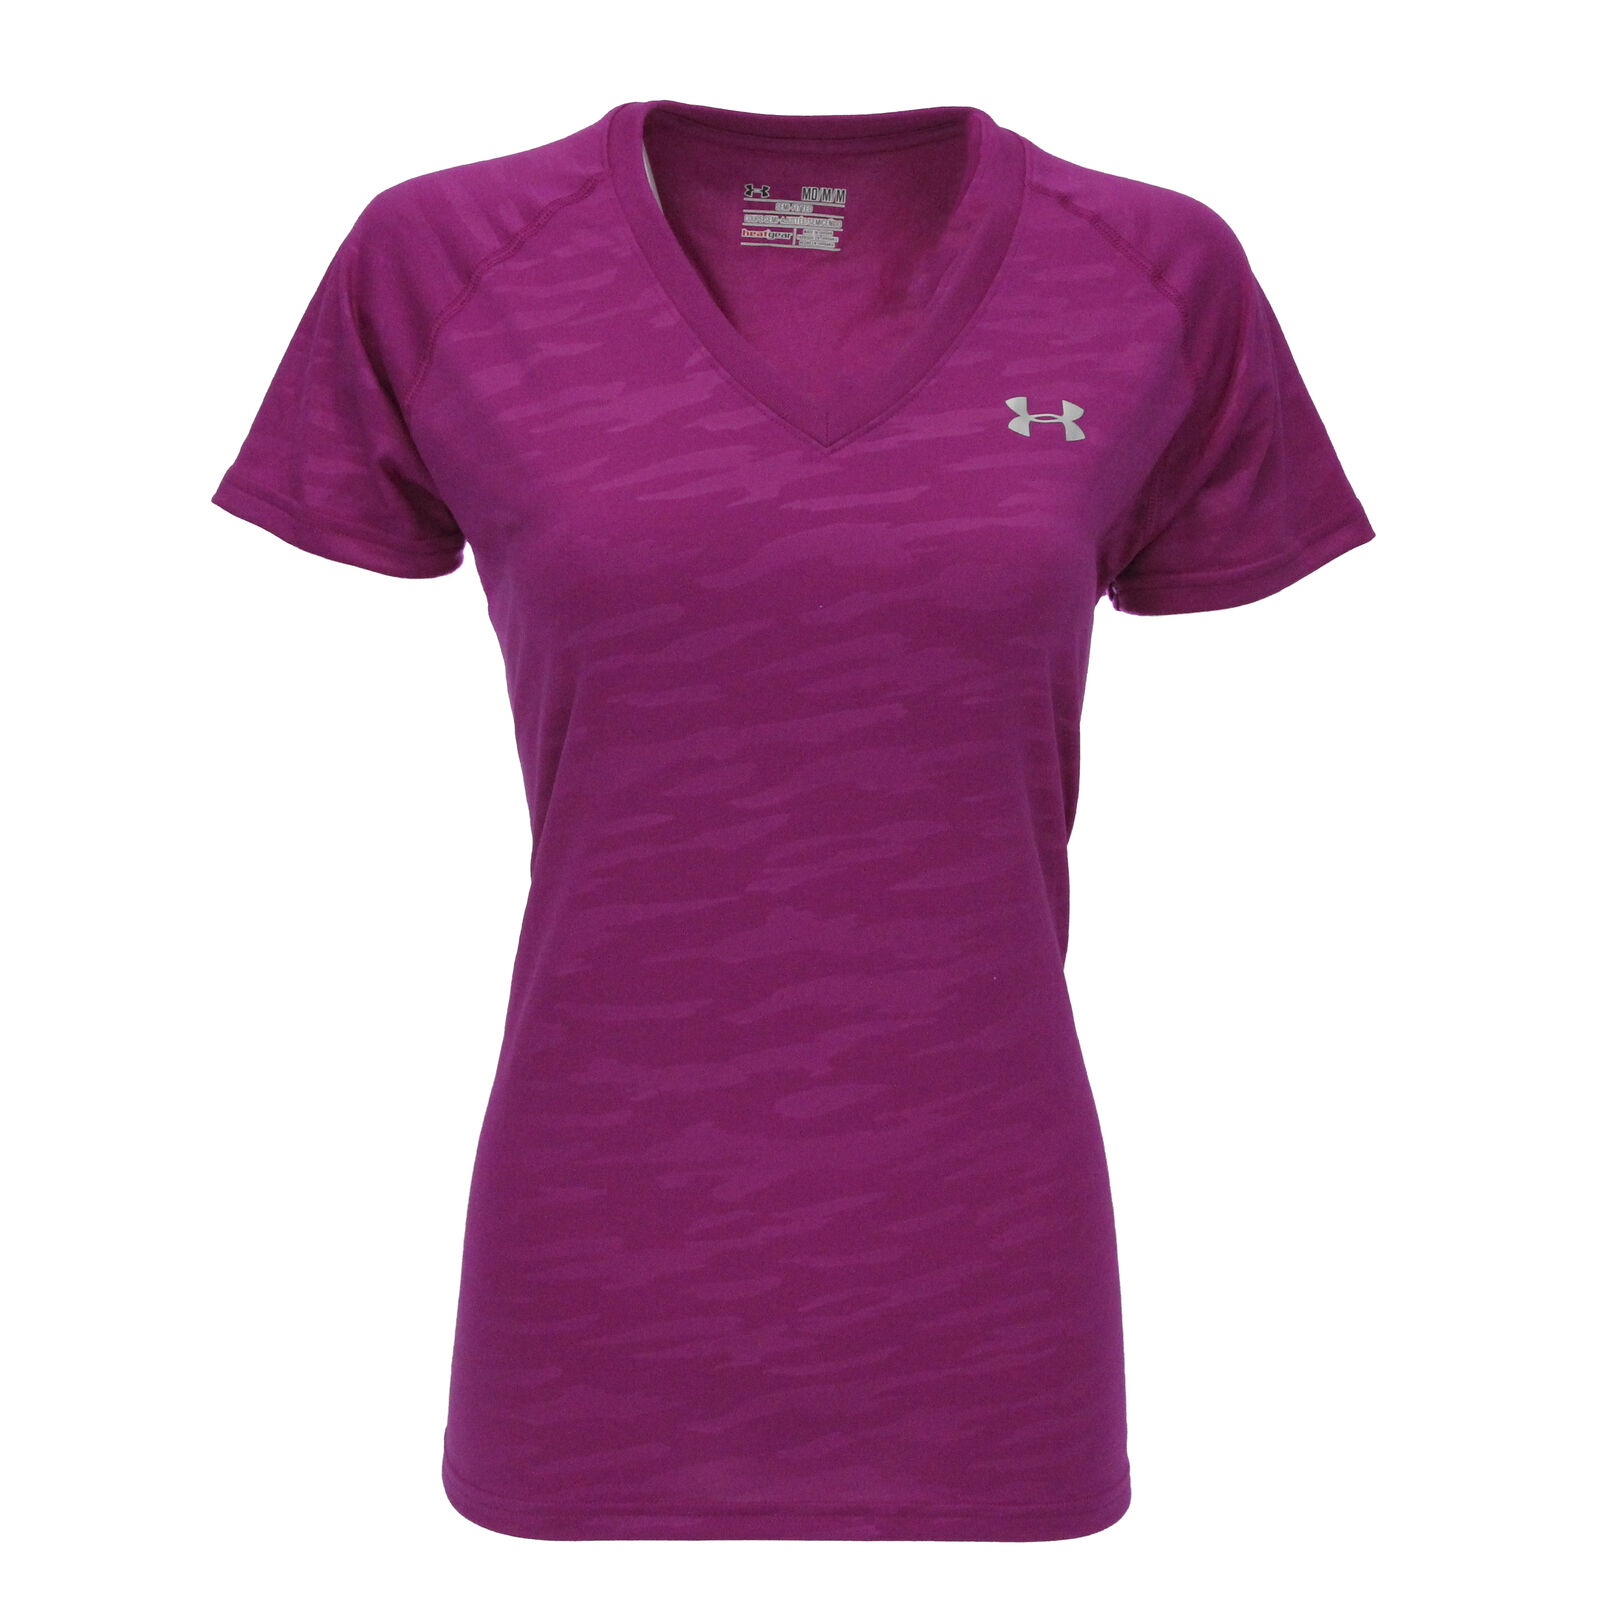 Under Armour Women's UA Tech V-Neck T-Shirt